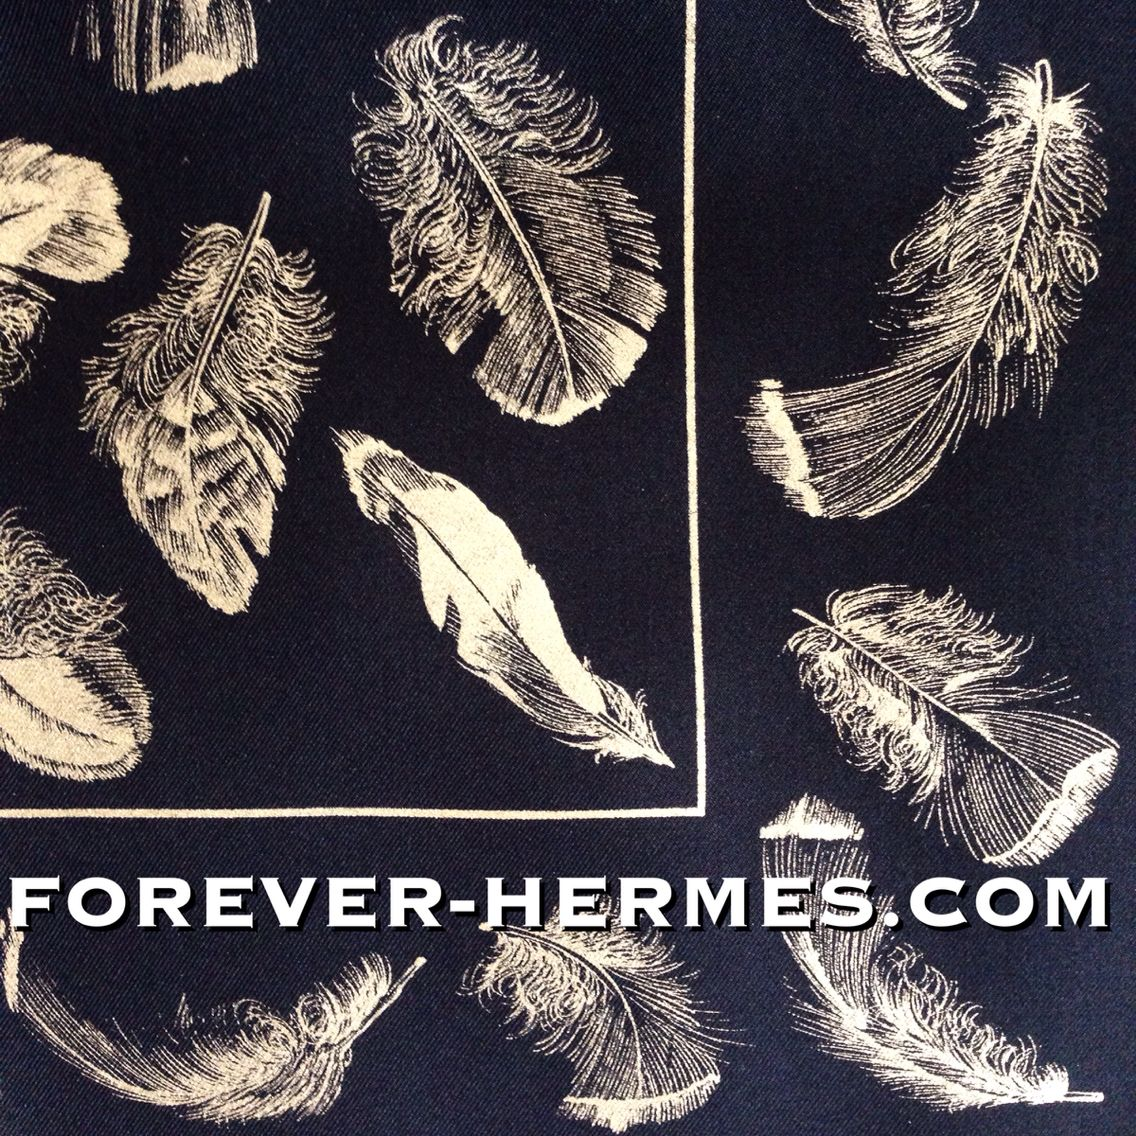 Henri de Linares was an 1904 born french painter specialized in wildlife as he often created paint replicas of animals for the museums. In our online store #foreverhermes http://forever-hermes.com we have a Very Rare BLACK & #GOLD version of this #hermesscarf he designed in year 1953 titled #plumes #feather It is to date one of the most wanted #Hermes #Paris designs, this classy elegance never faded and is of point of reference for many #textiledesigners to this date #dapper #gentleman…